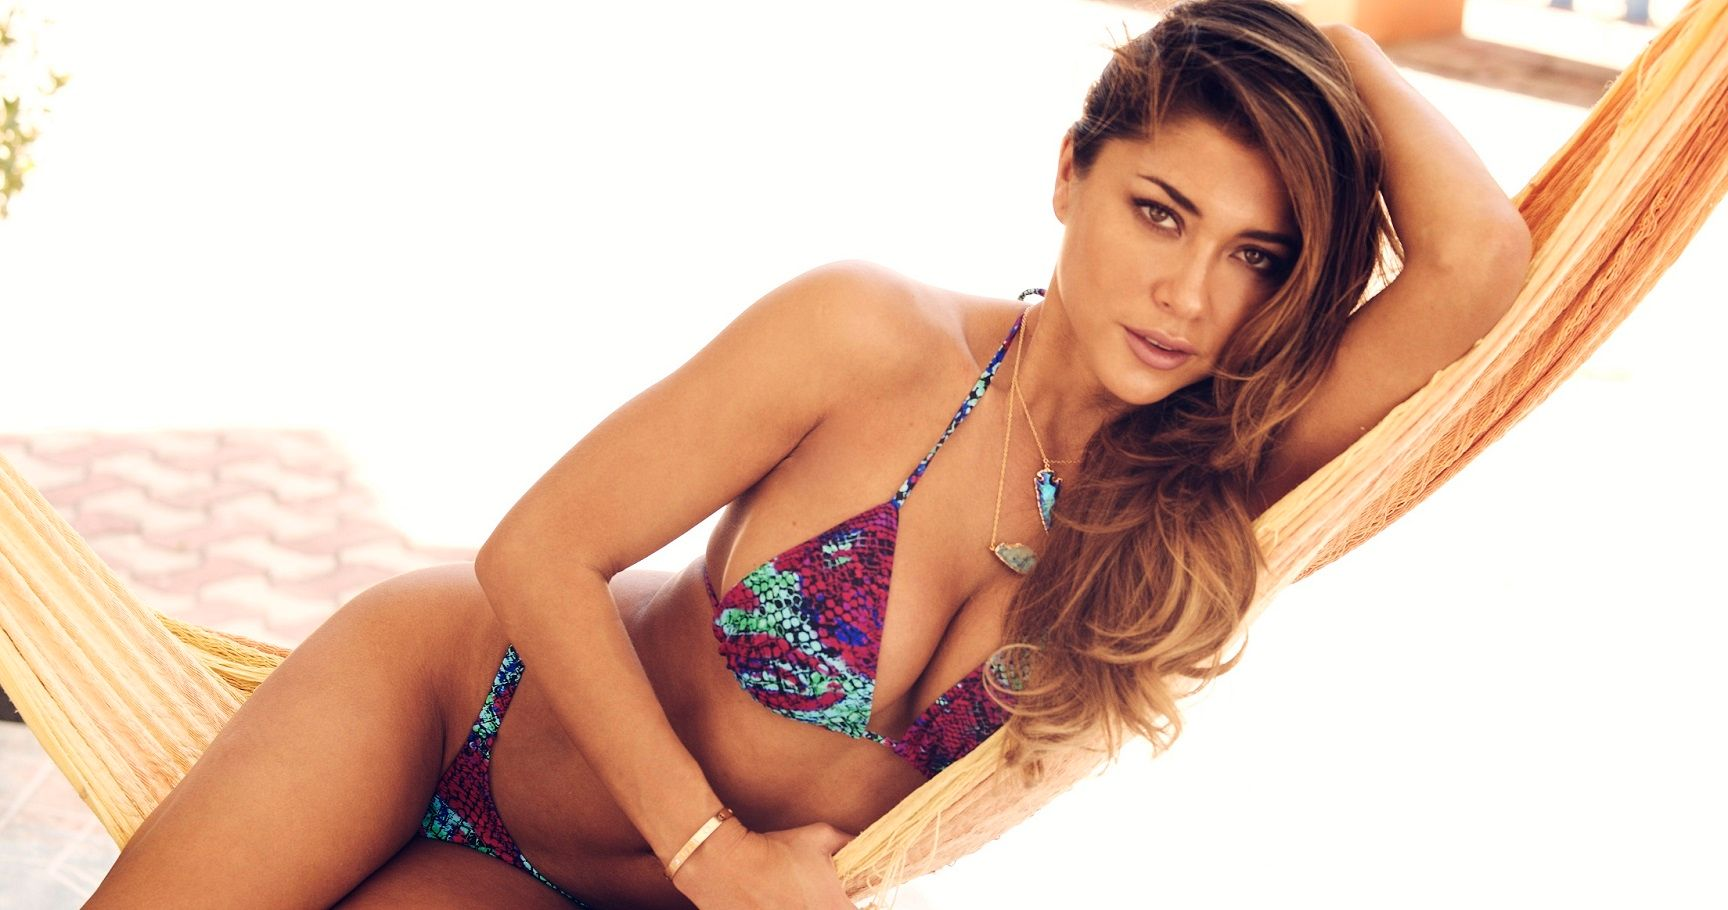 Top 20 Hottest Pictures Of Arianny Celeste You Need To See